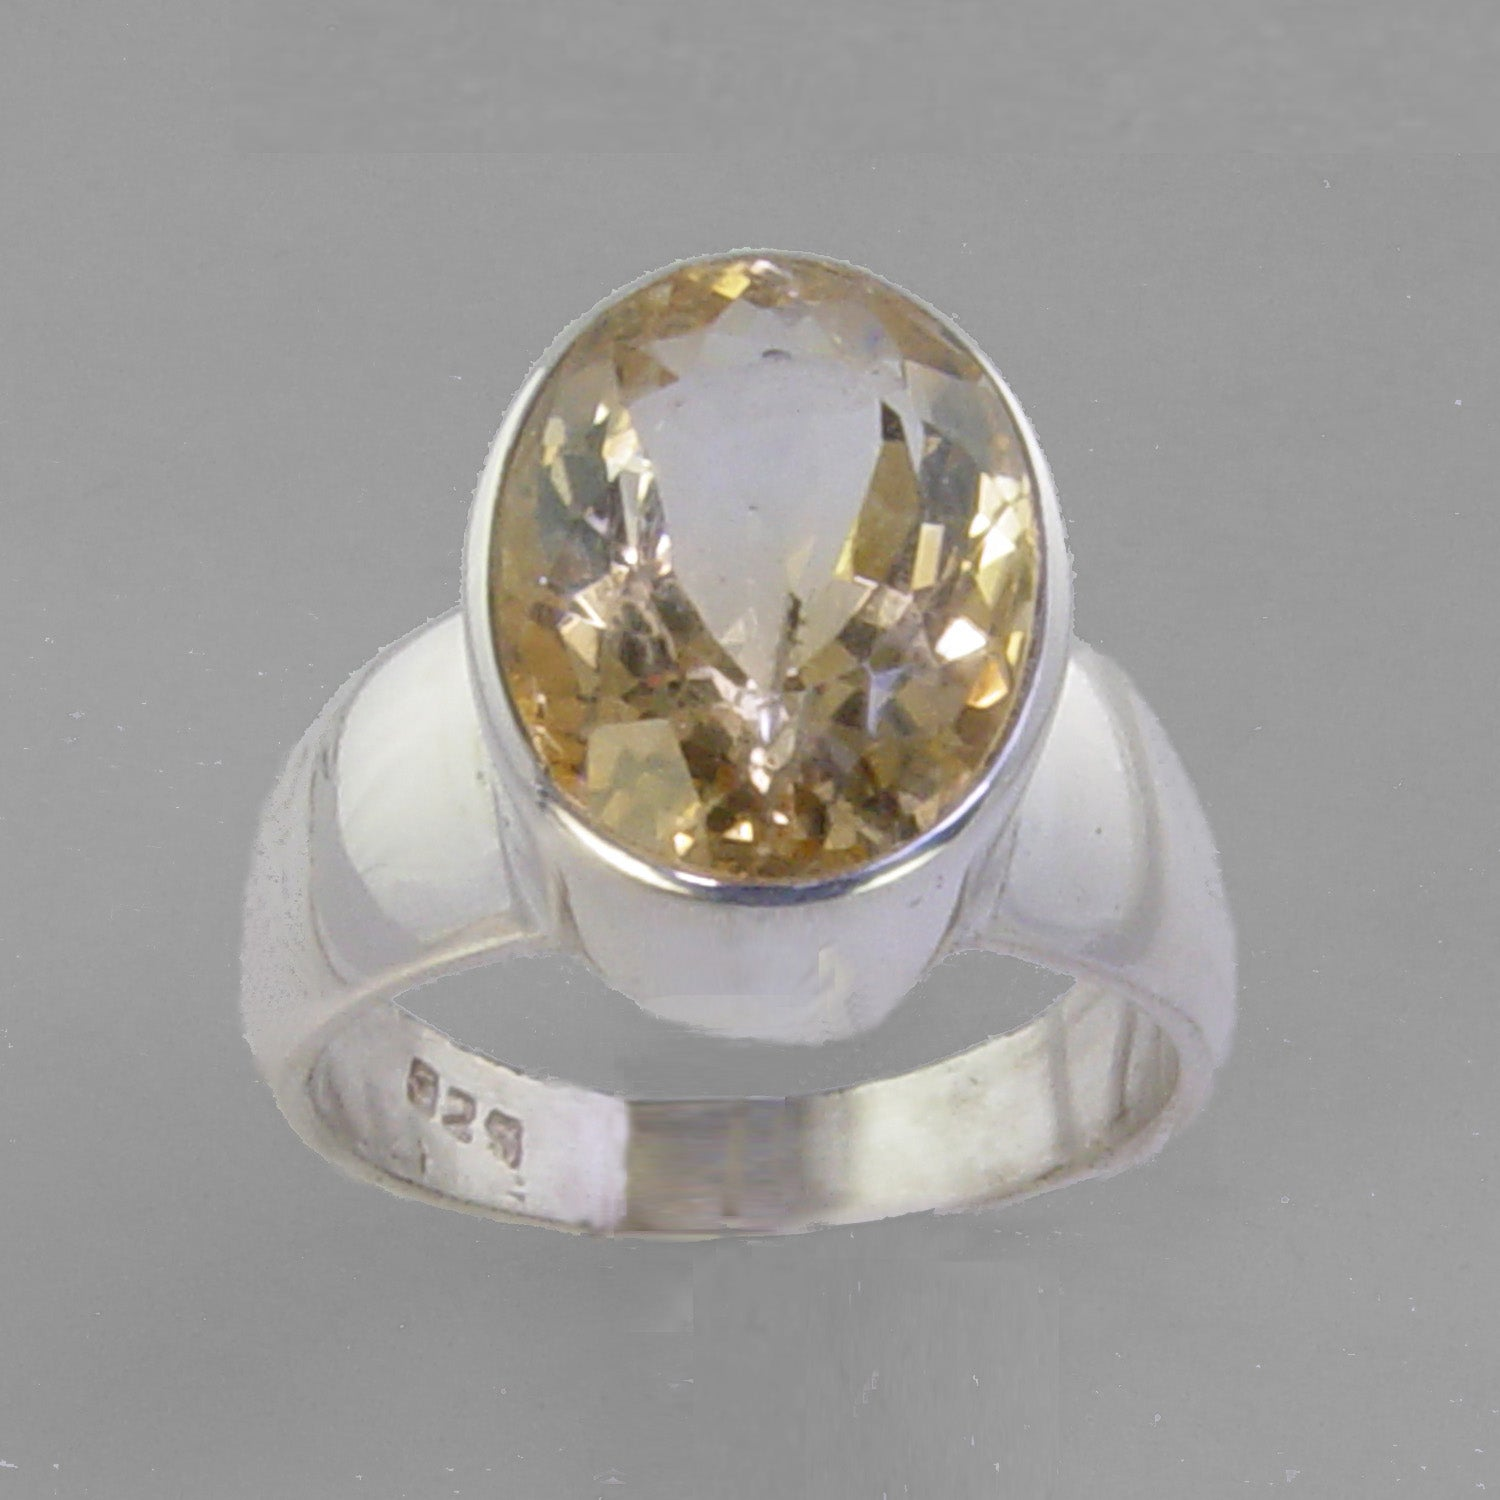 Citrine 4.75 ct Oval Bezel Set Sterling Silver Ring, Size 6.5